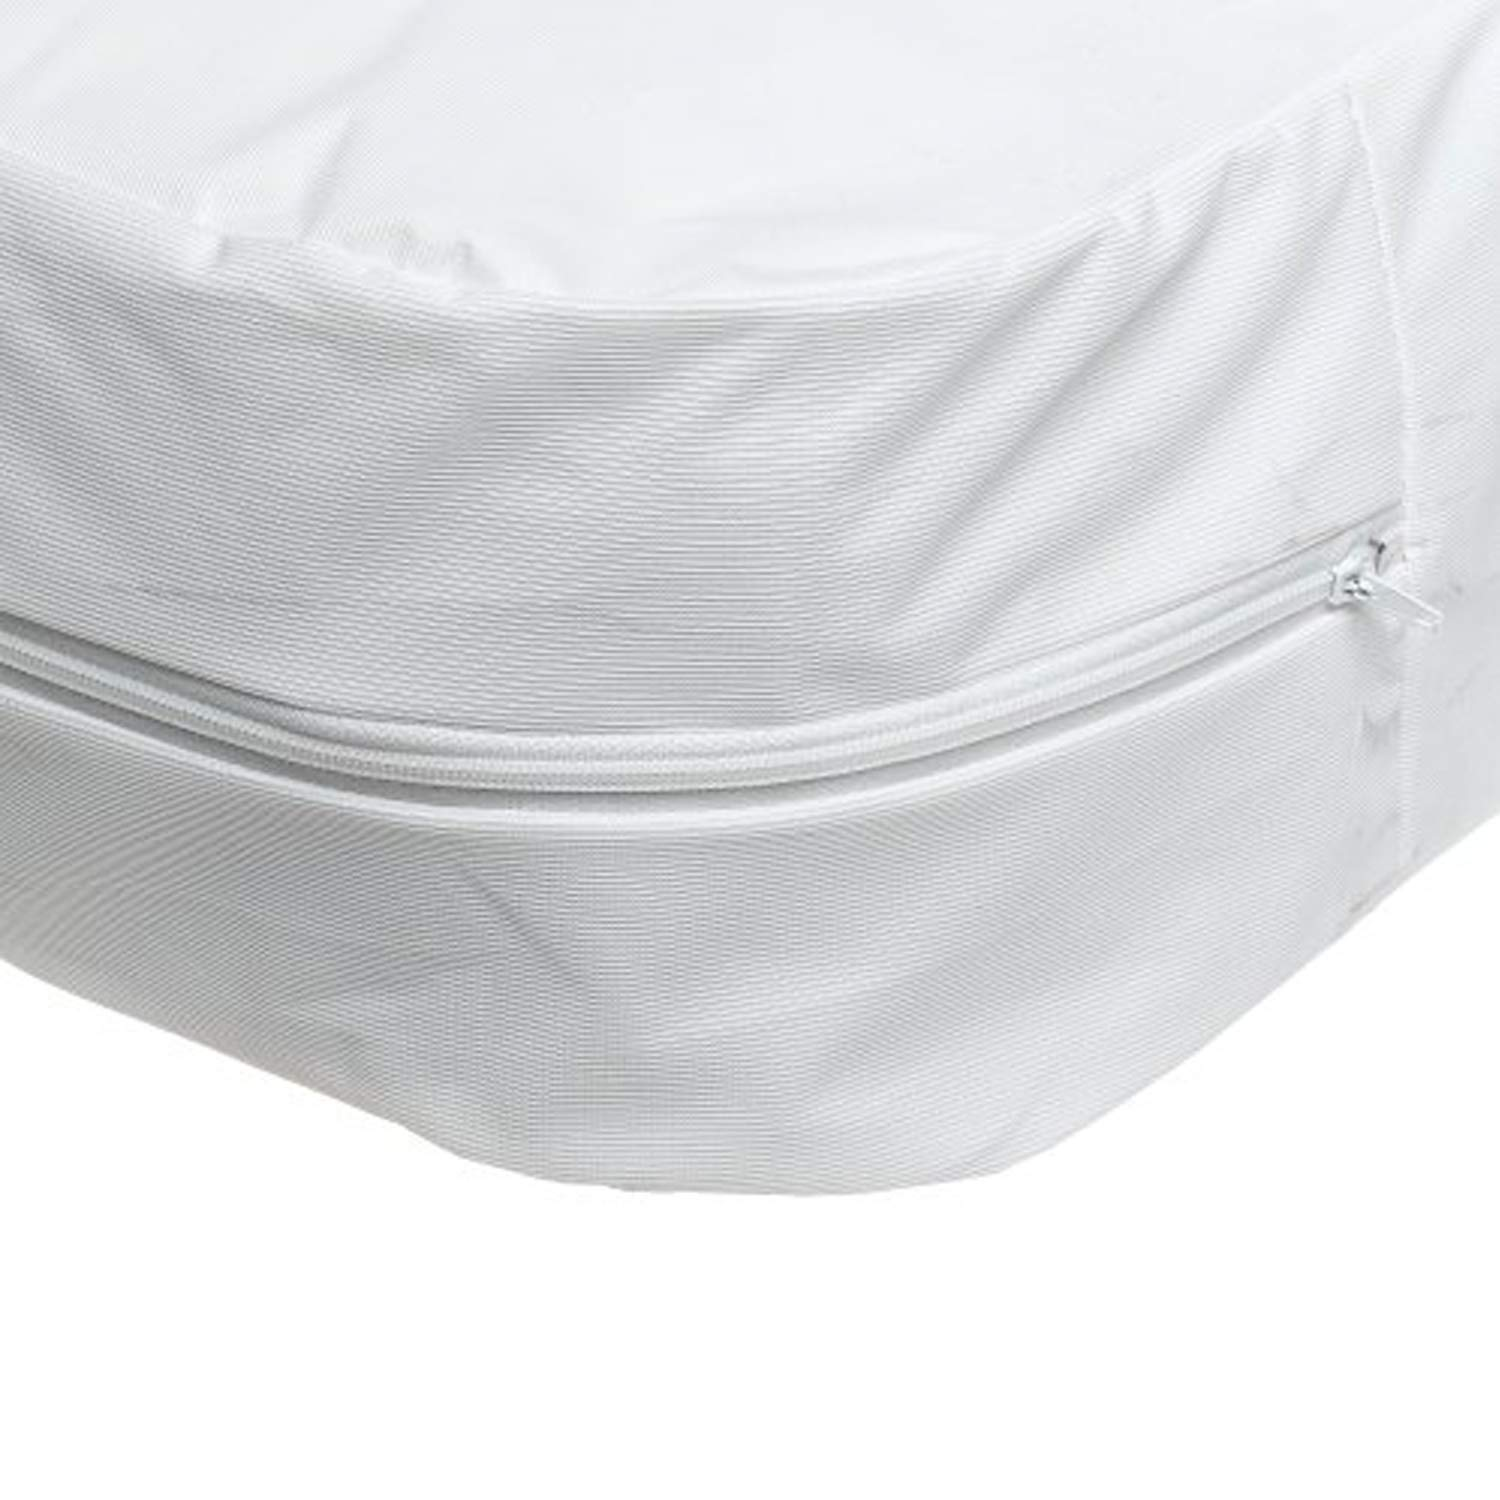 Bed Cover Twin Size Fitted Sheet Zippered Plastic Mattress